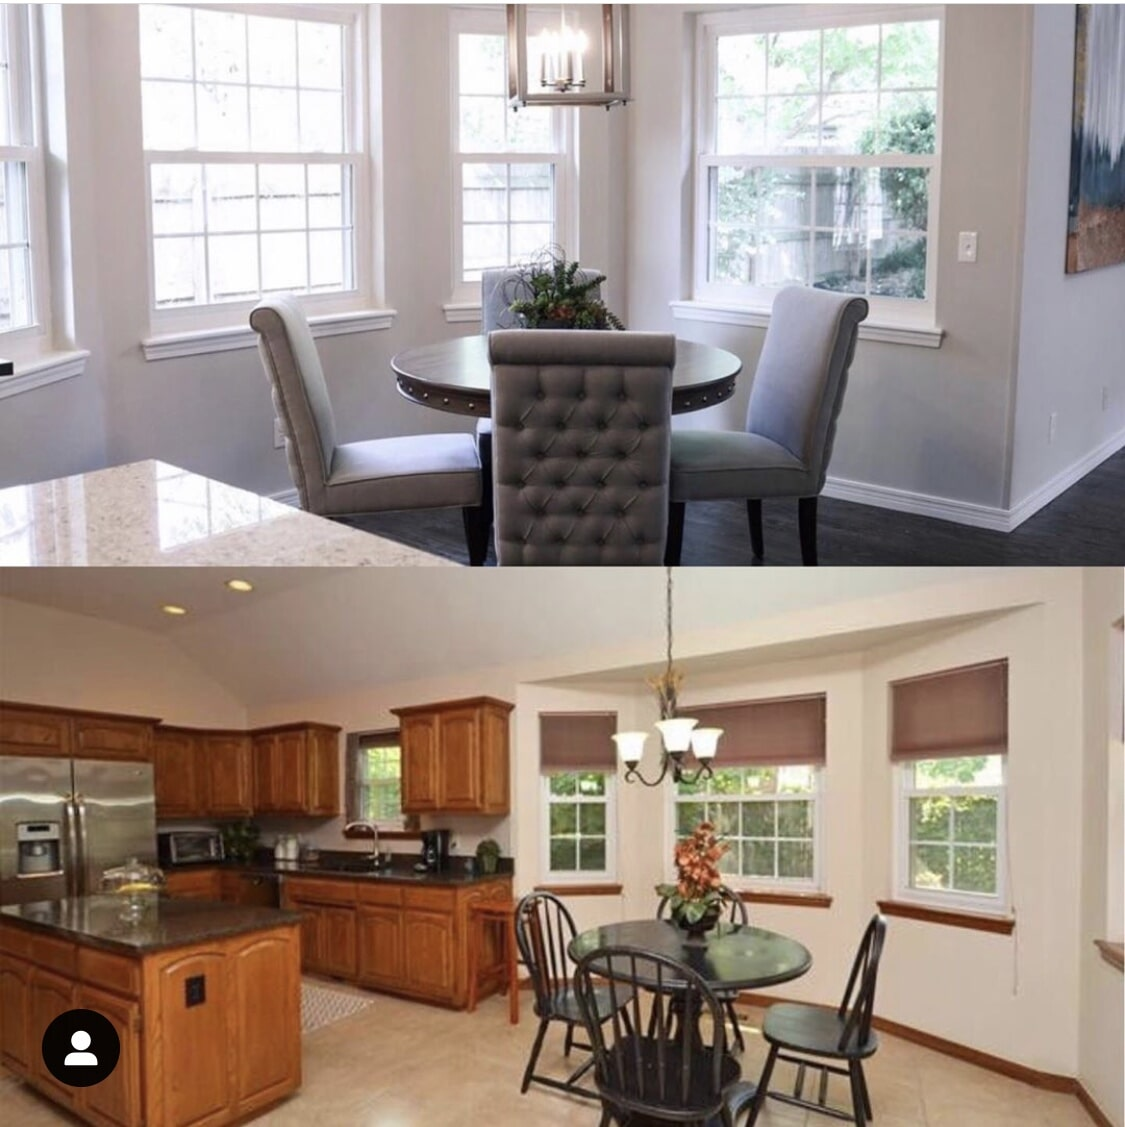 Kitchen remodel in Bixby, OK from Superior Wood Floors & Tile